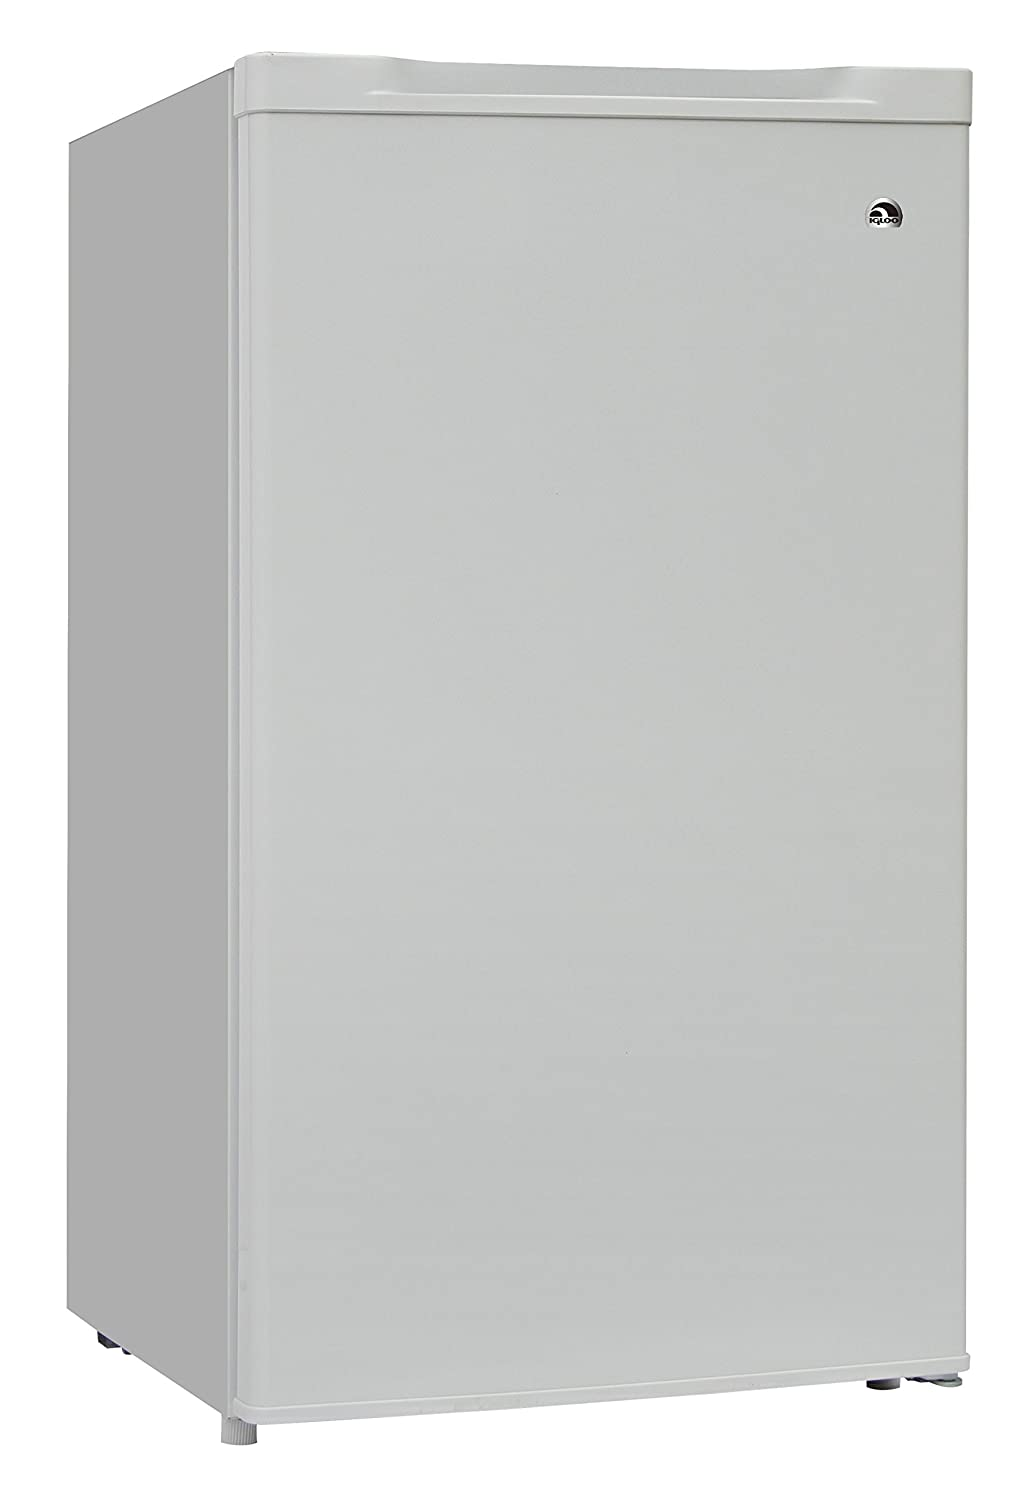 Igloo FRF285 Upright Compact Freezer, 2.8 Cubic Feet, White